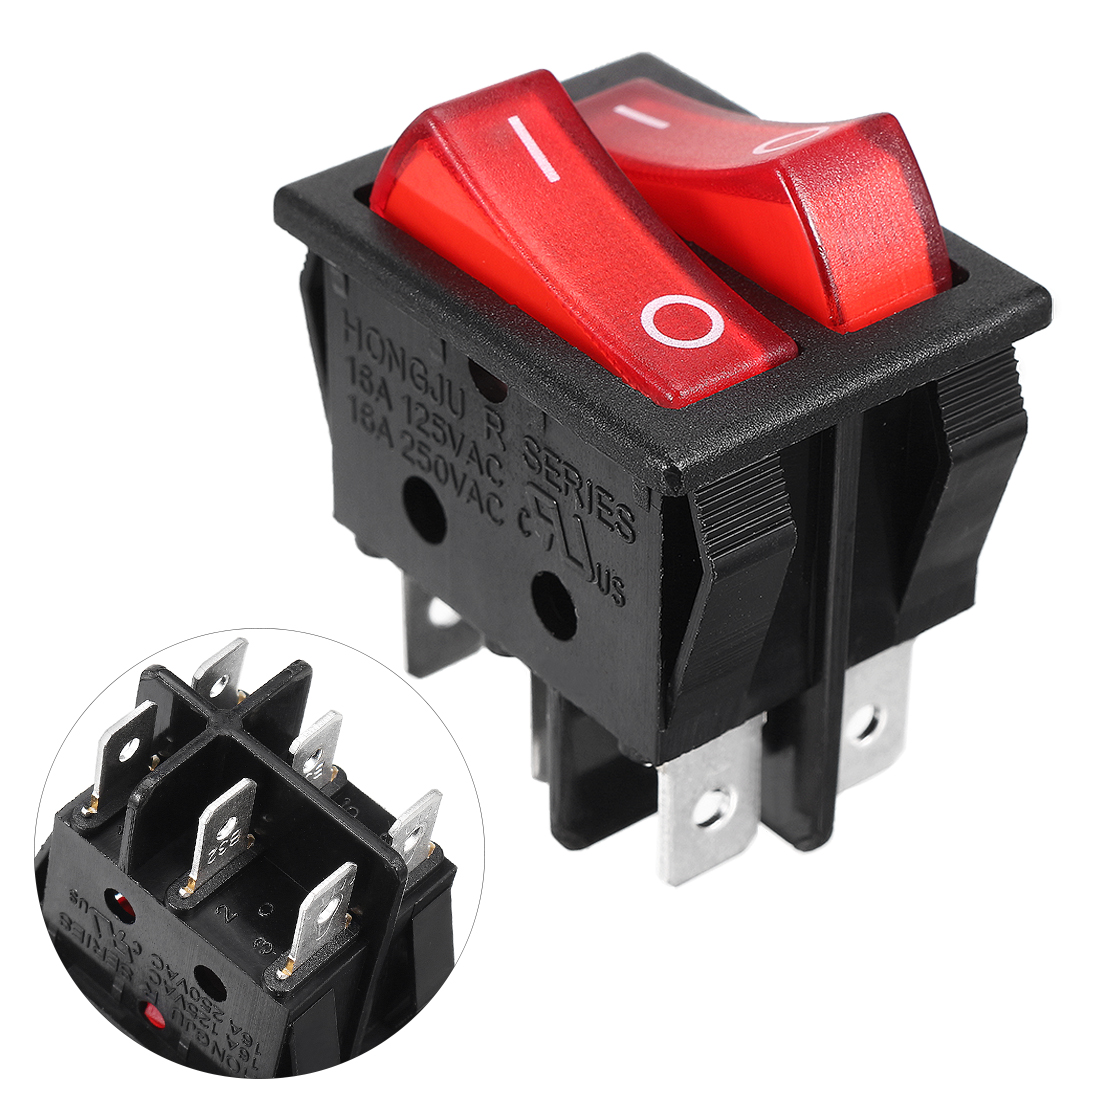 250VAC 16A Red Illuminated Dual SPST ON/OFF Rocker Switch